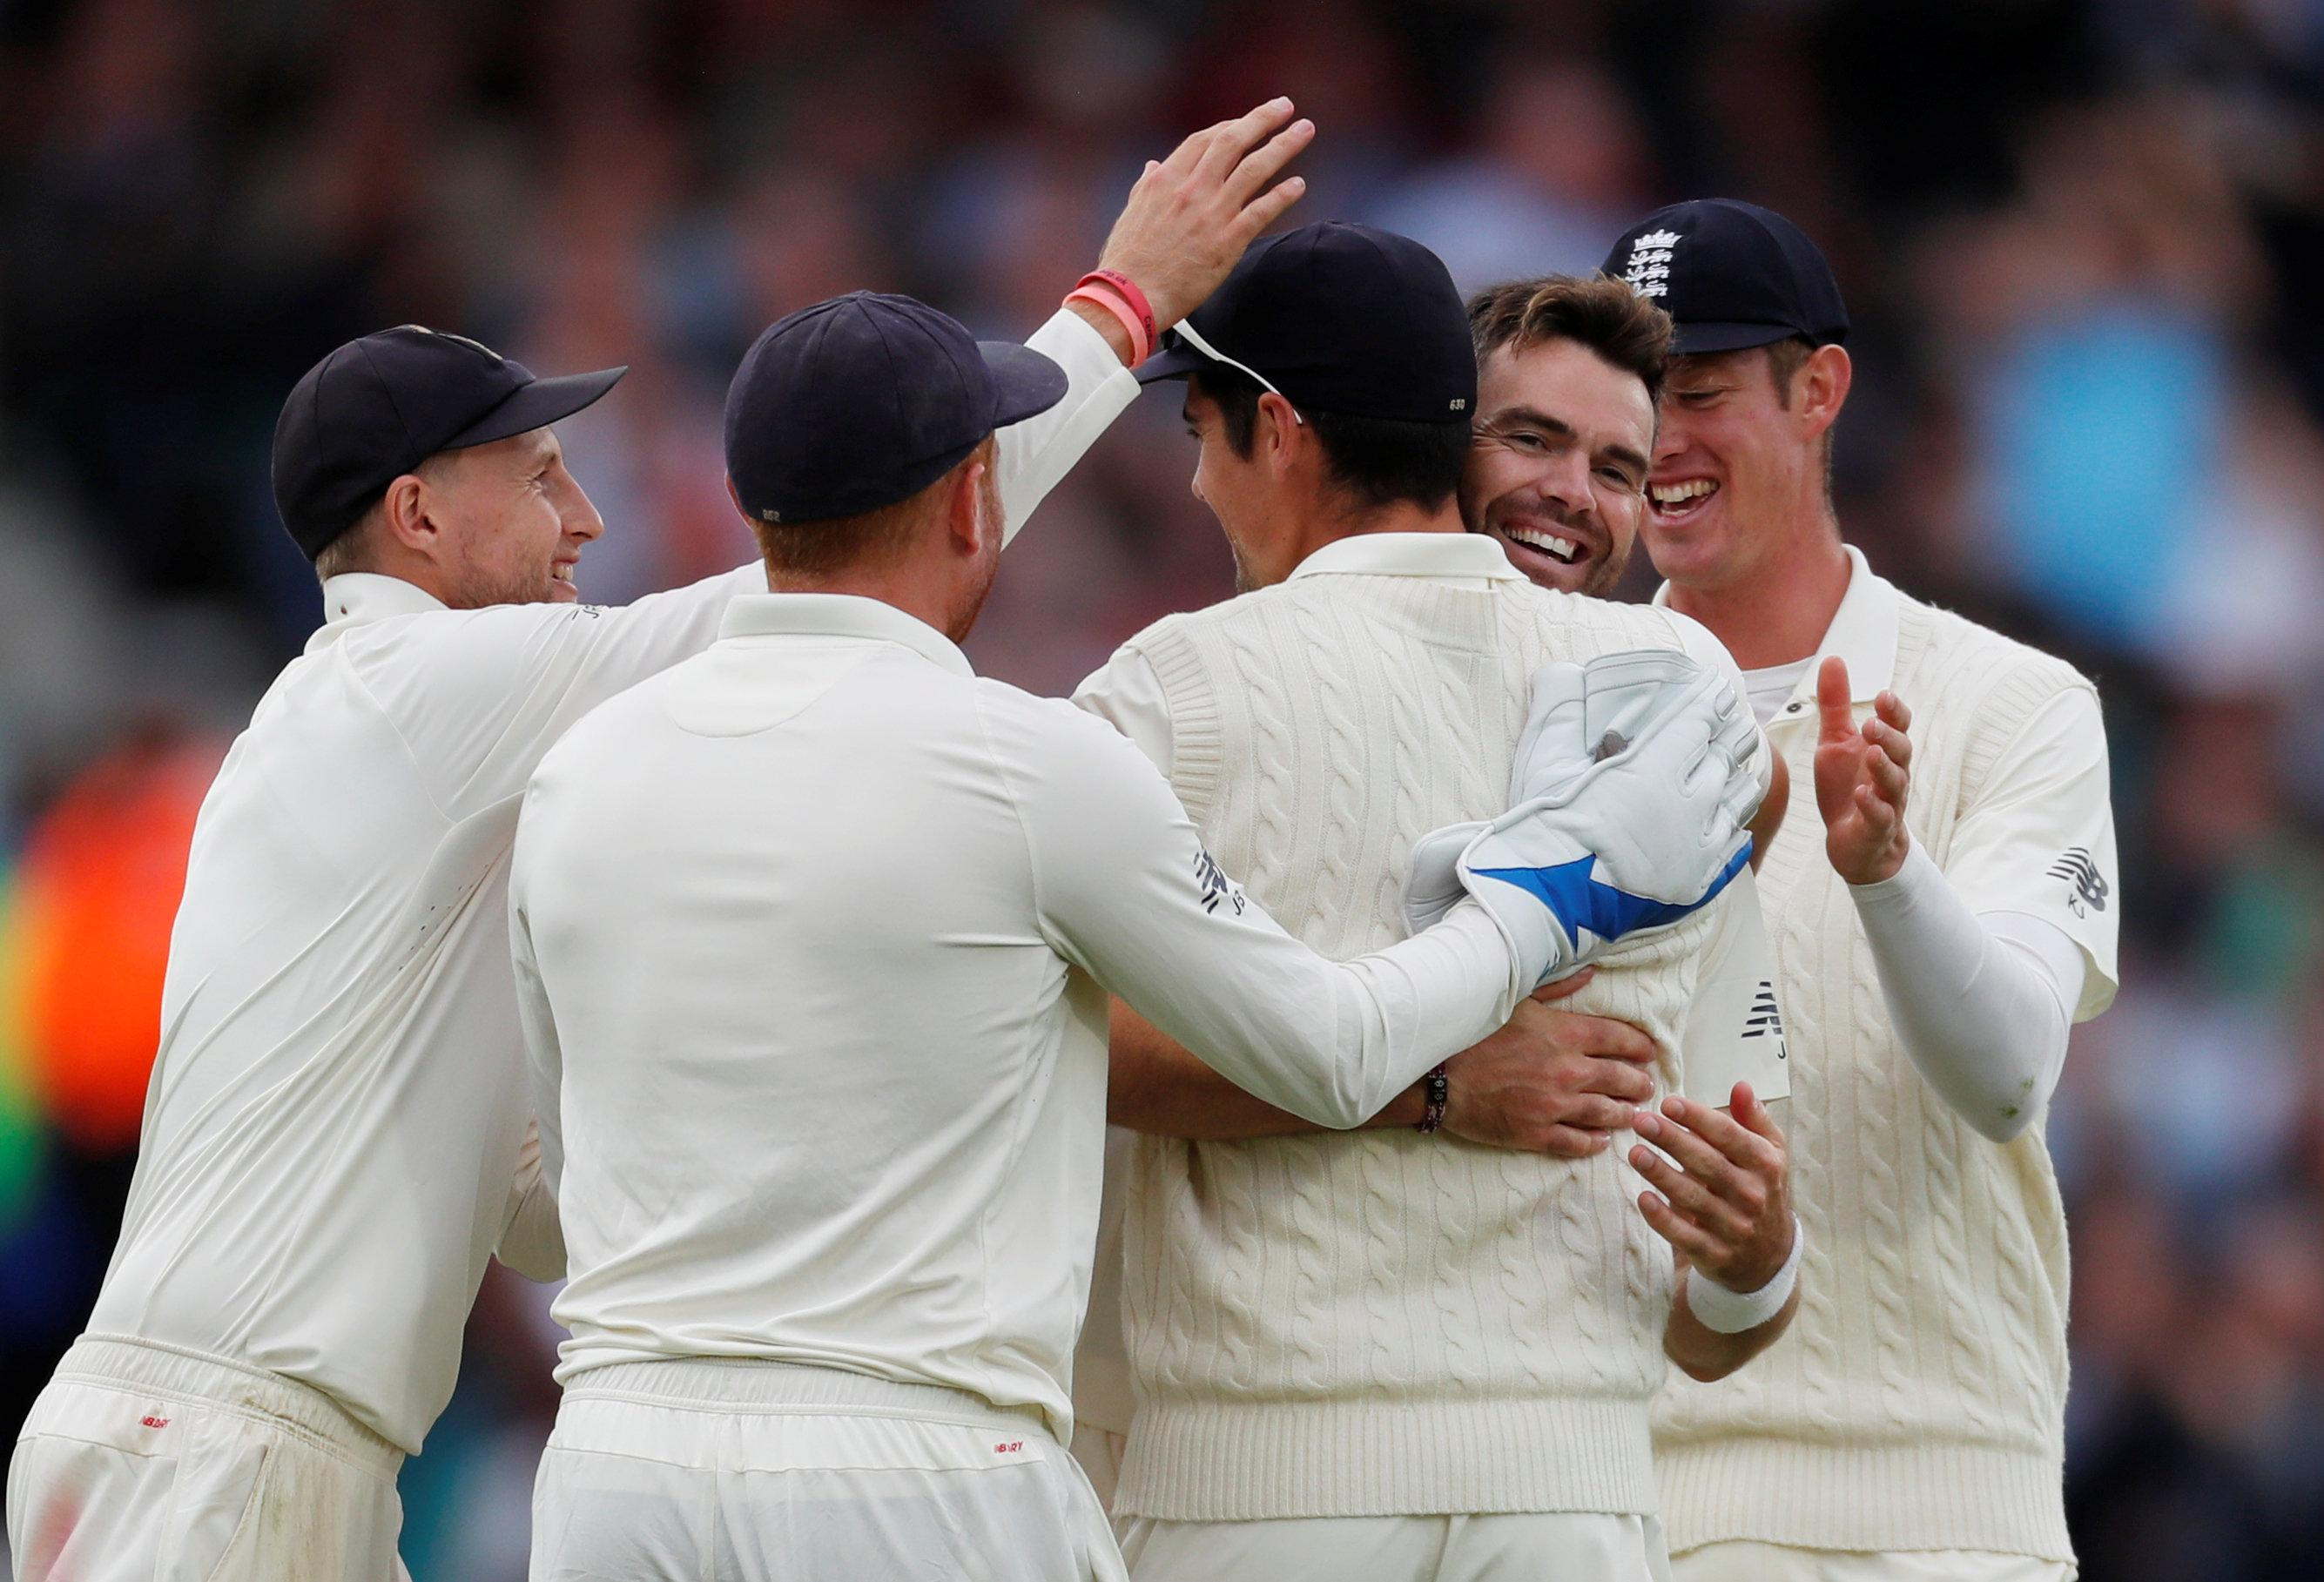 England are looking to send opener Alastair Cook into retirement with victory in his final Test.